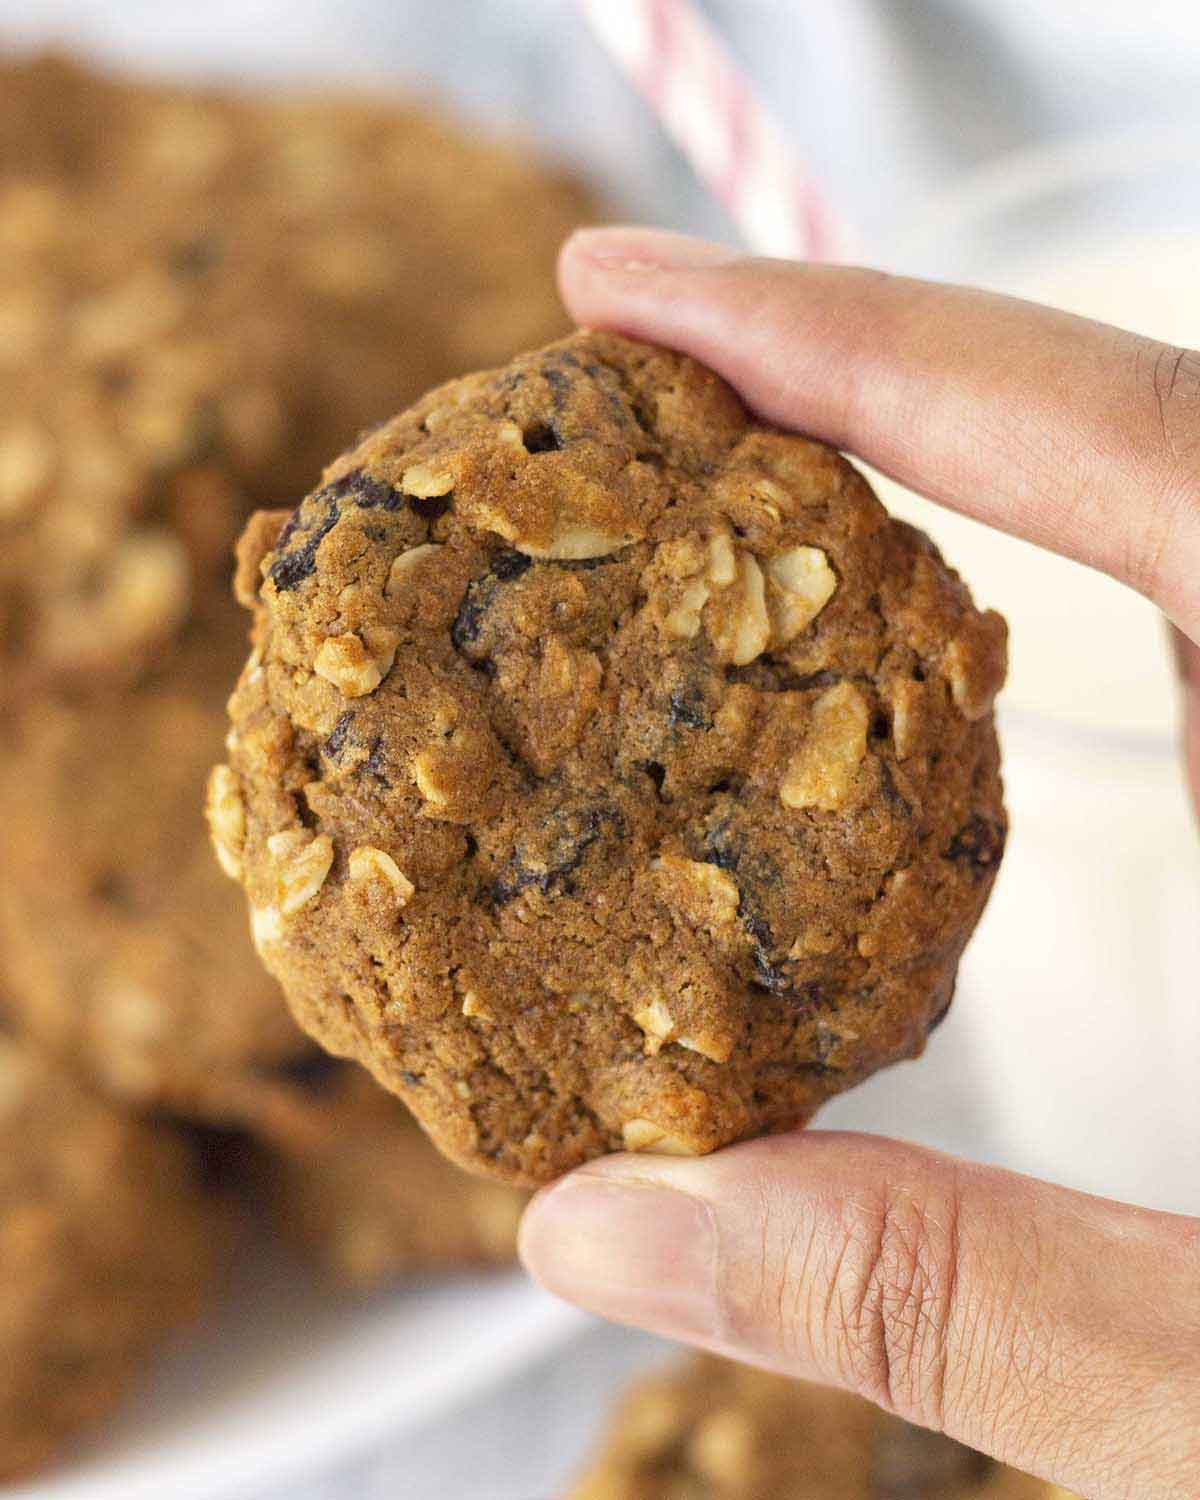 Image shows a hand holding up a soft plant-based oatmeal raisin cookie.